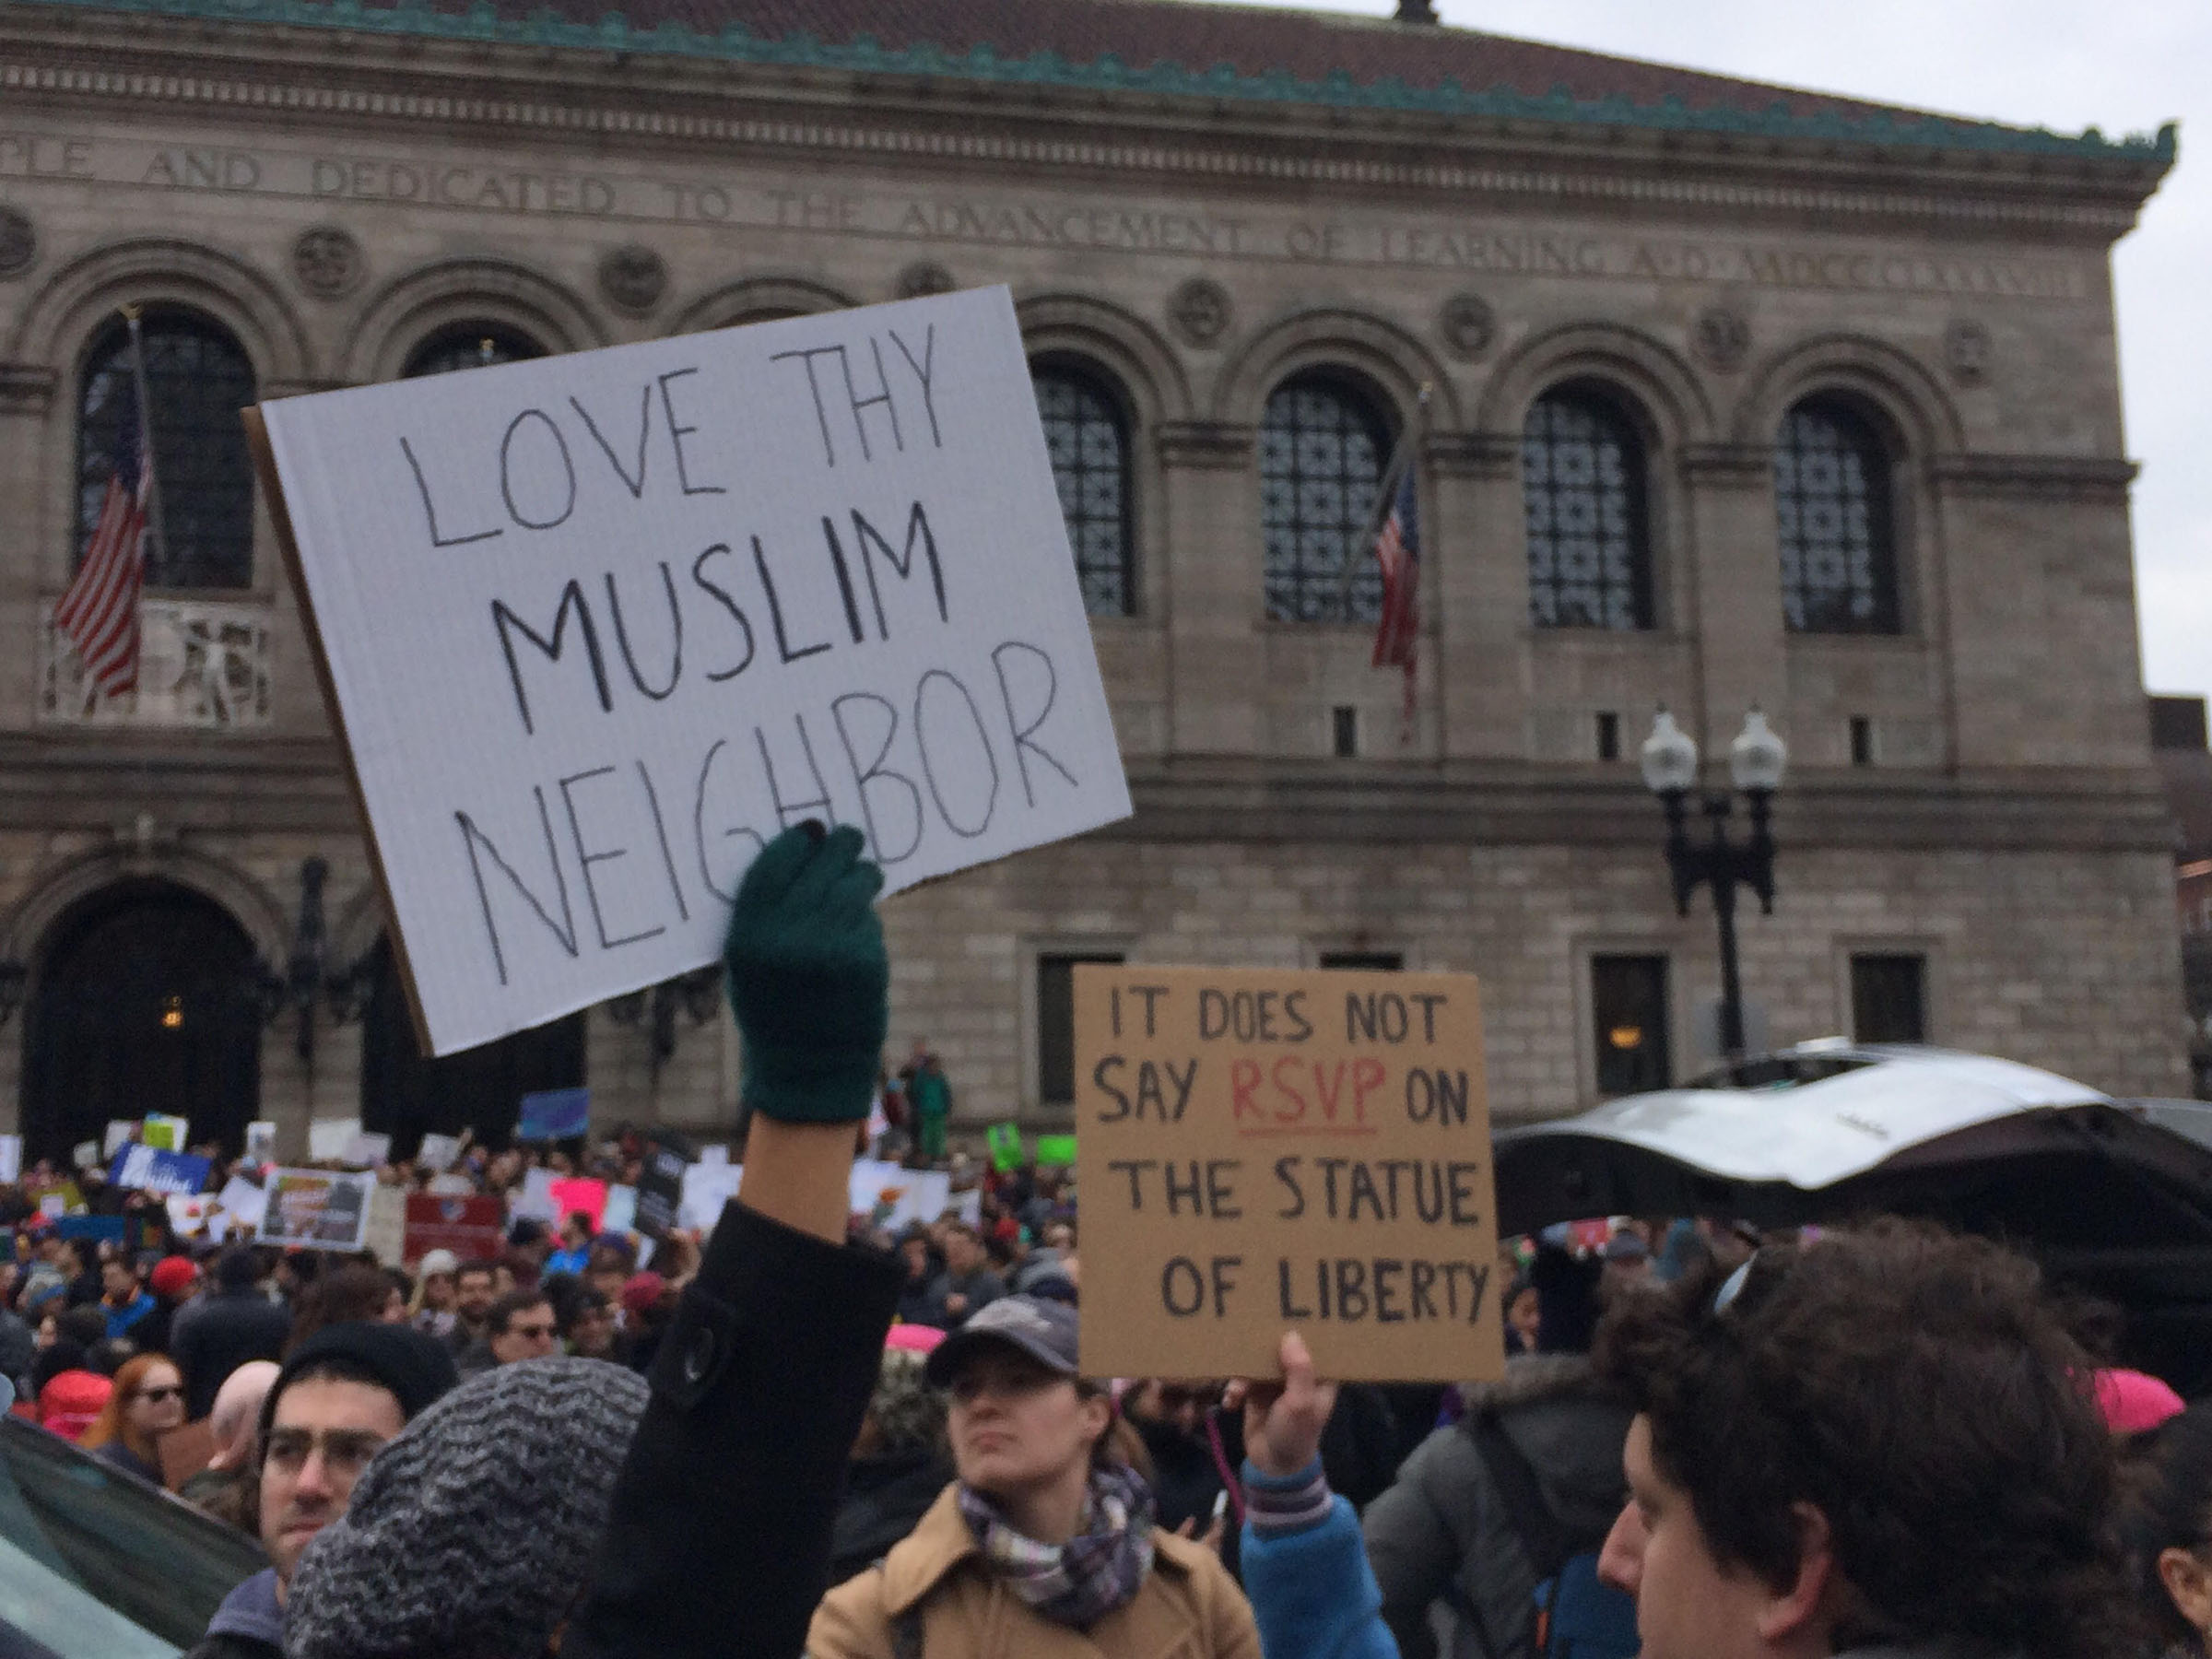 """Signs read """"Love thy Muslim neighbor"""" and """"It does not say RSVP on the Statue of Liberty"""" at a demonstration in Boston's Copley Square on January 29, 2017. (Photo by Giulia Afiune/GroundTruth)"""